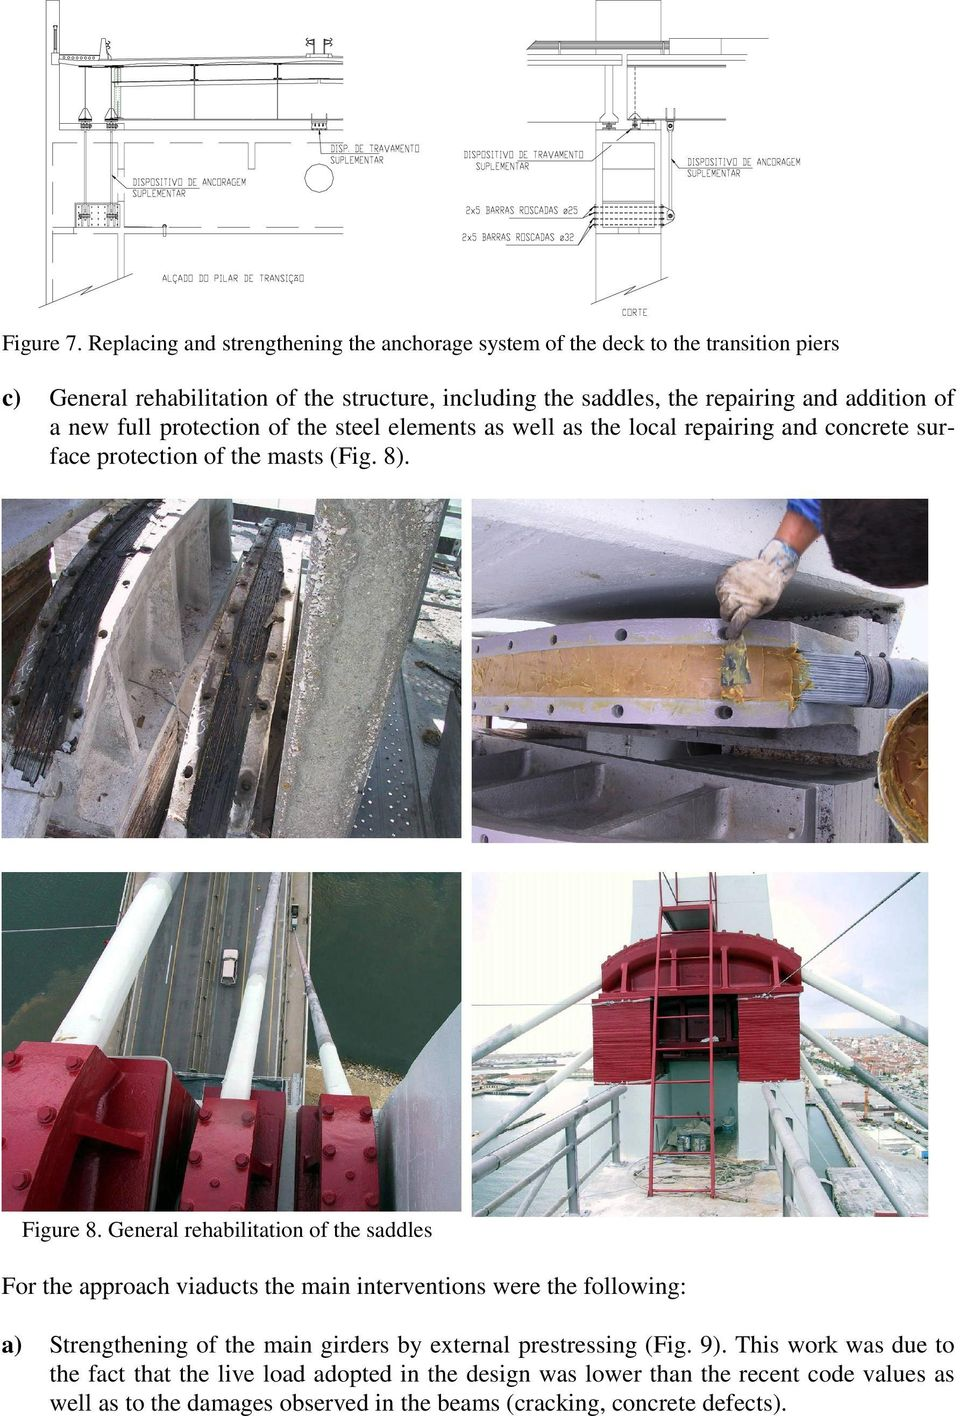 addition of a new full protection of the steel elements as well as the local repairing and concrete surface protection of the masts (Fig. 8). Figure 8.